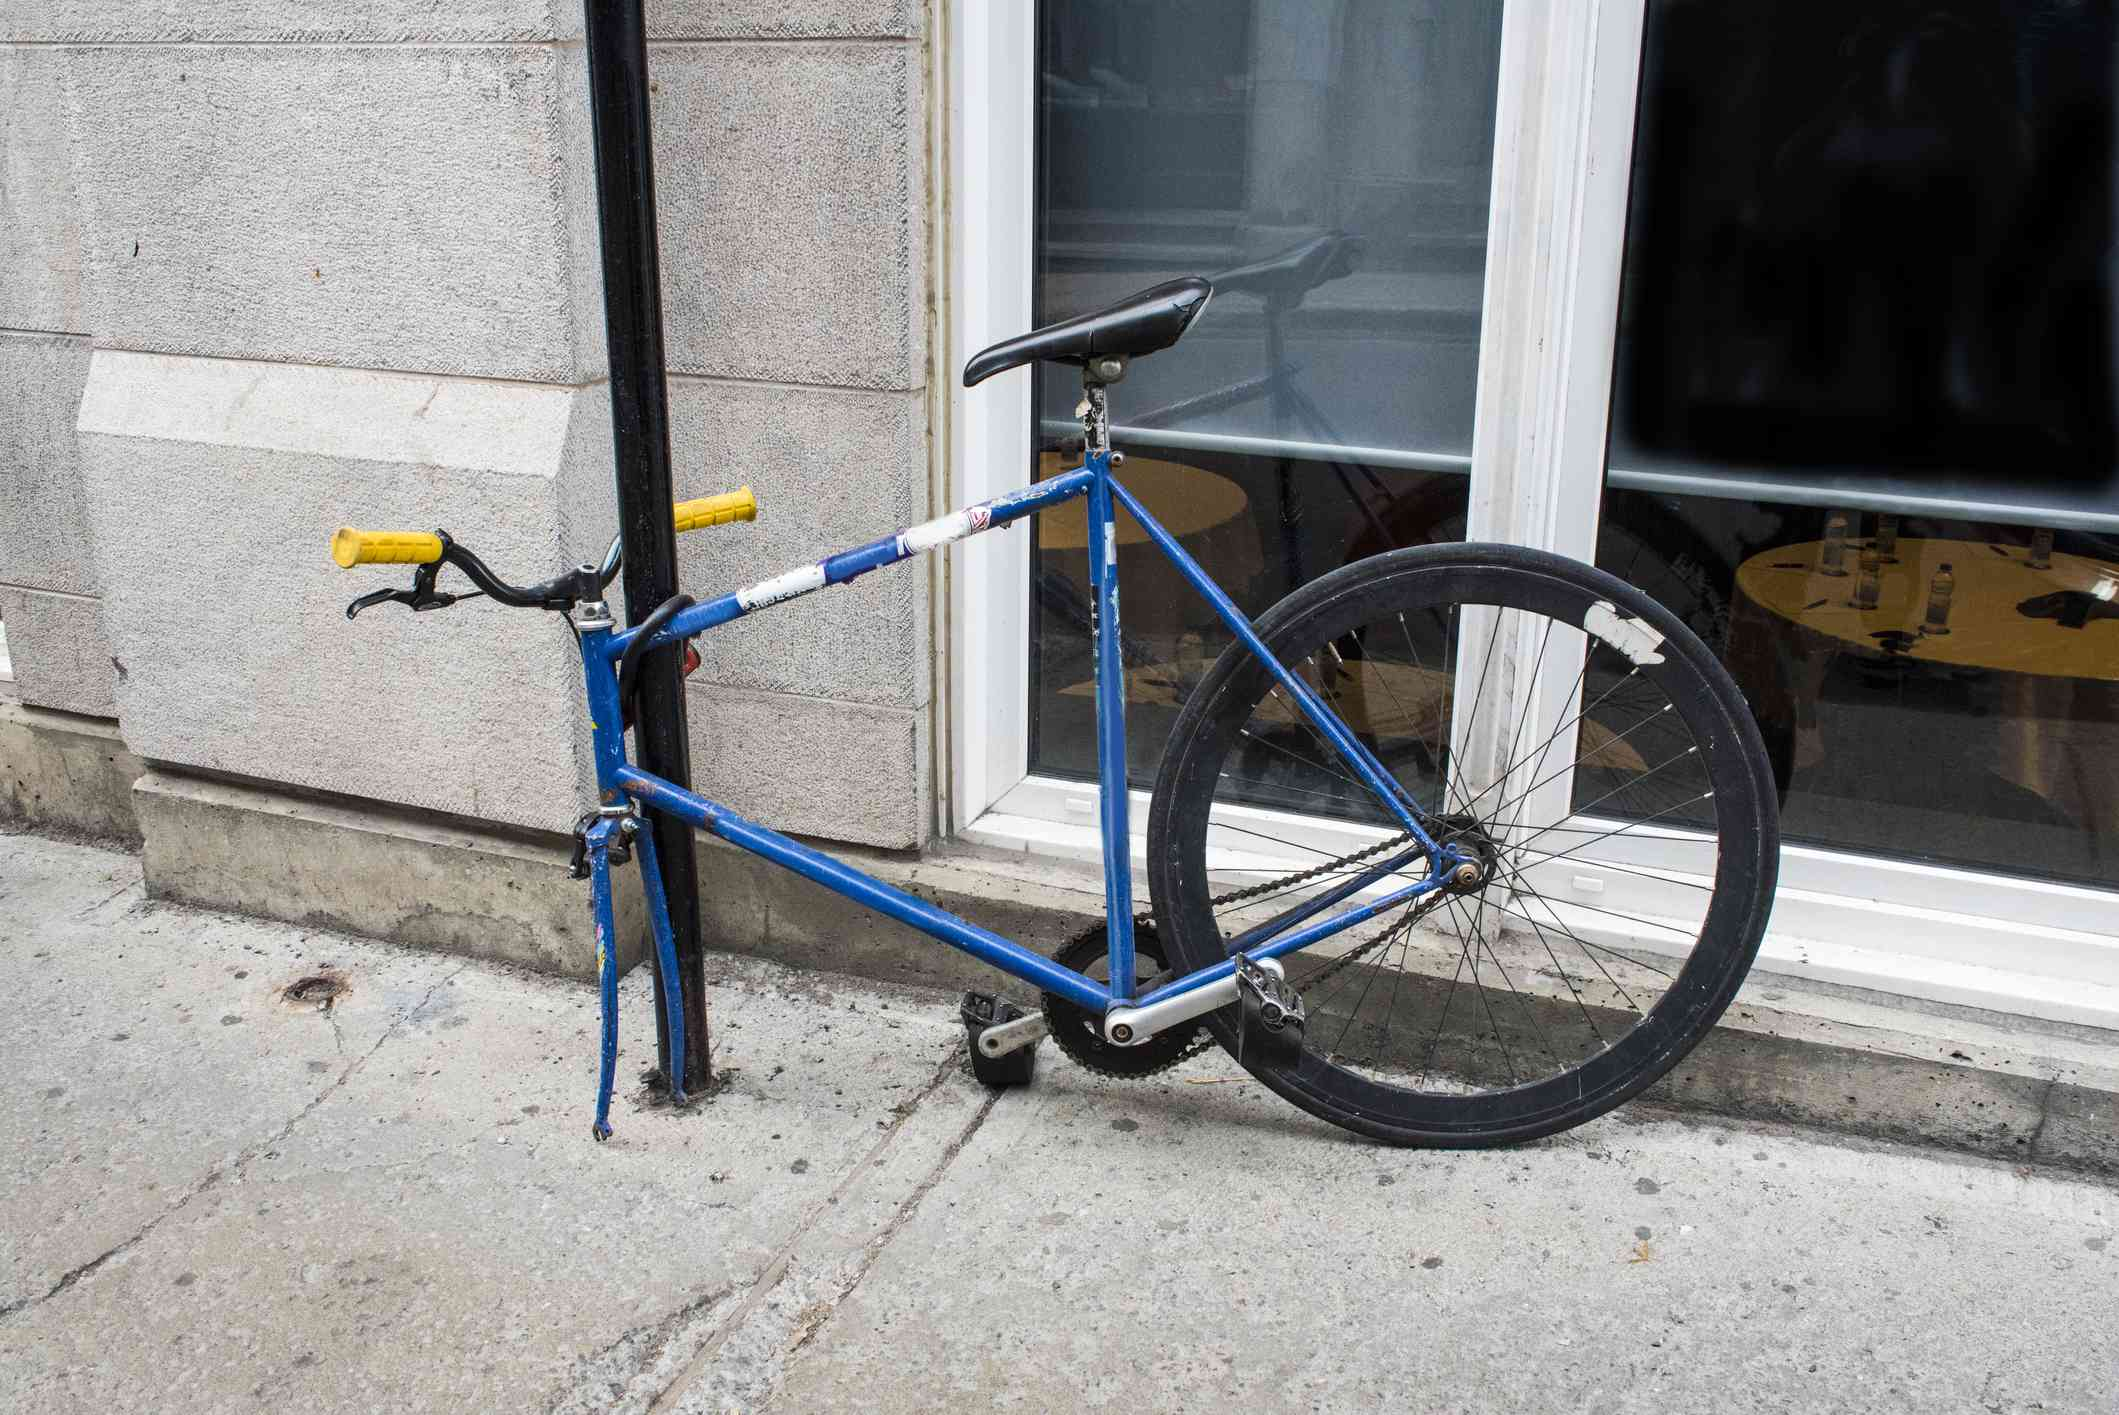 Bike with Missing Front Wheel